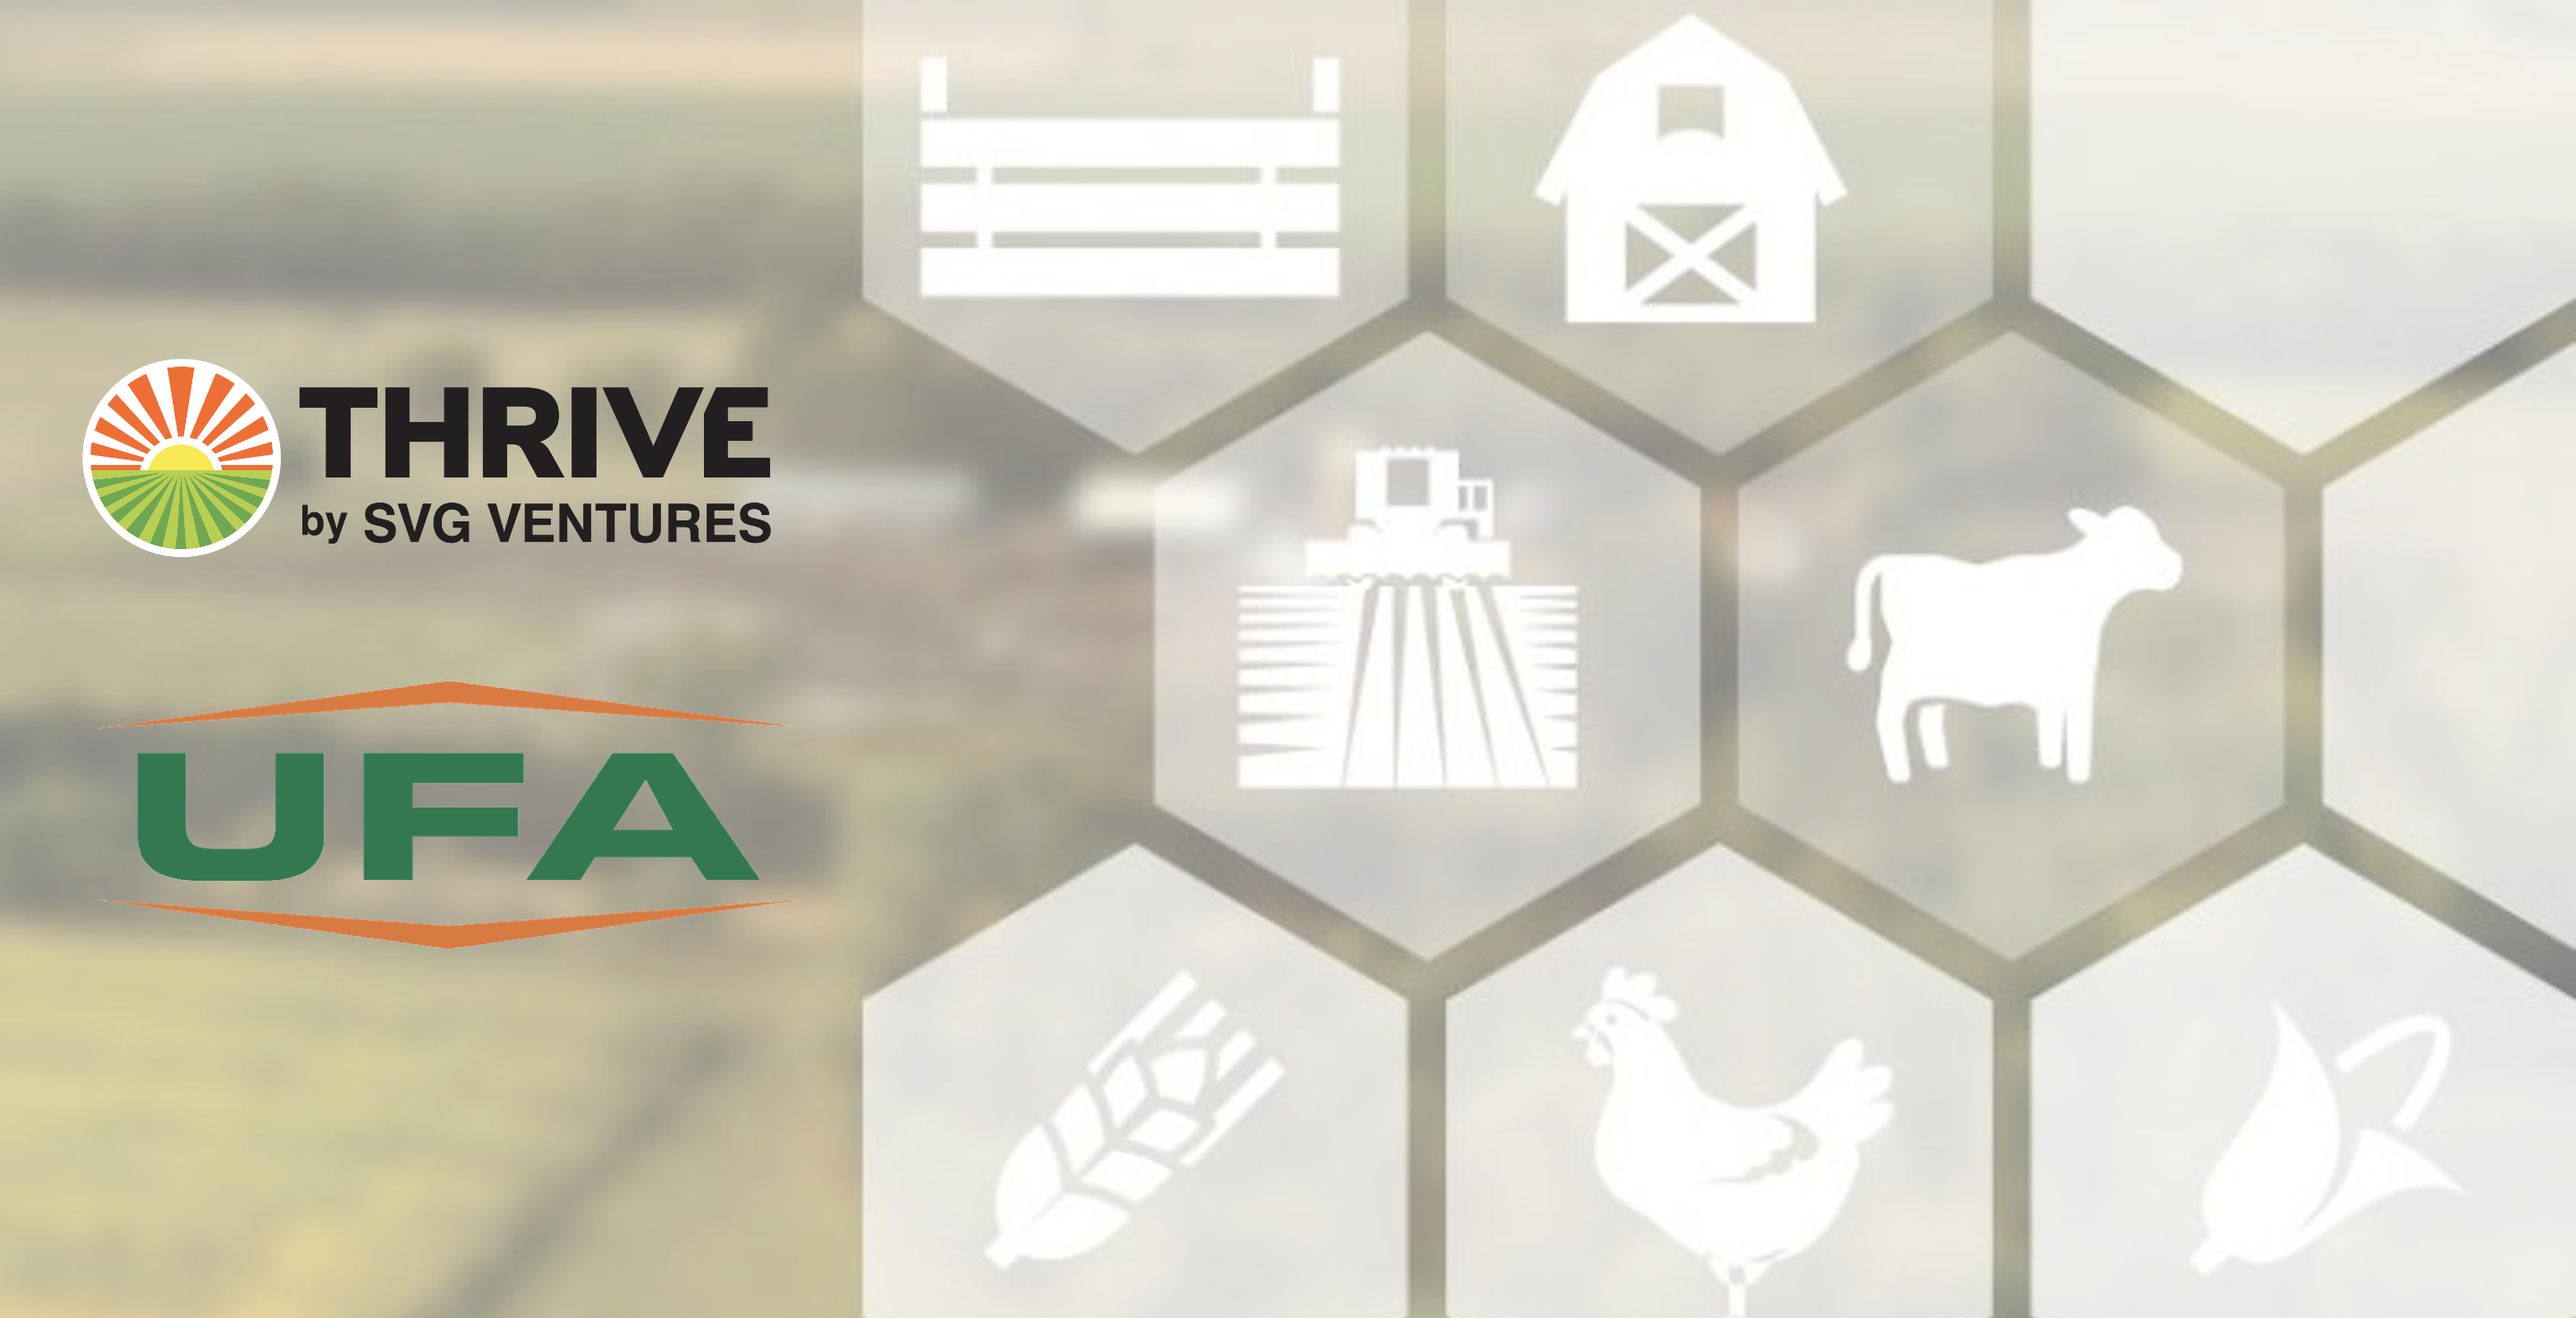 UFA Co-operative Announces Engagement with SVG Ventures | THRIVE